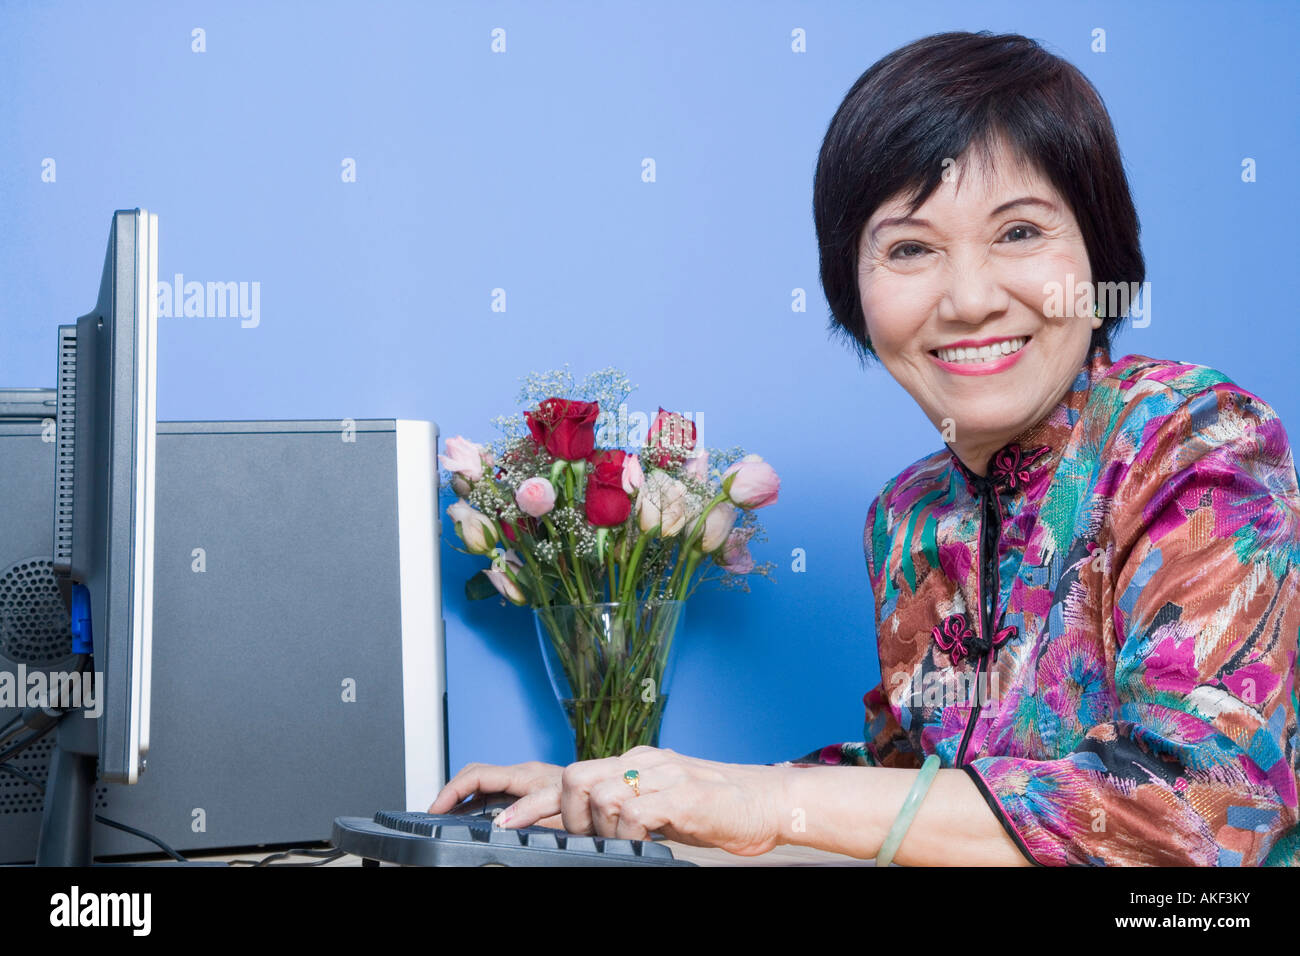 Portrait of a senior woman using a computer and smiling Banque D'Images